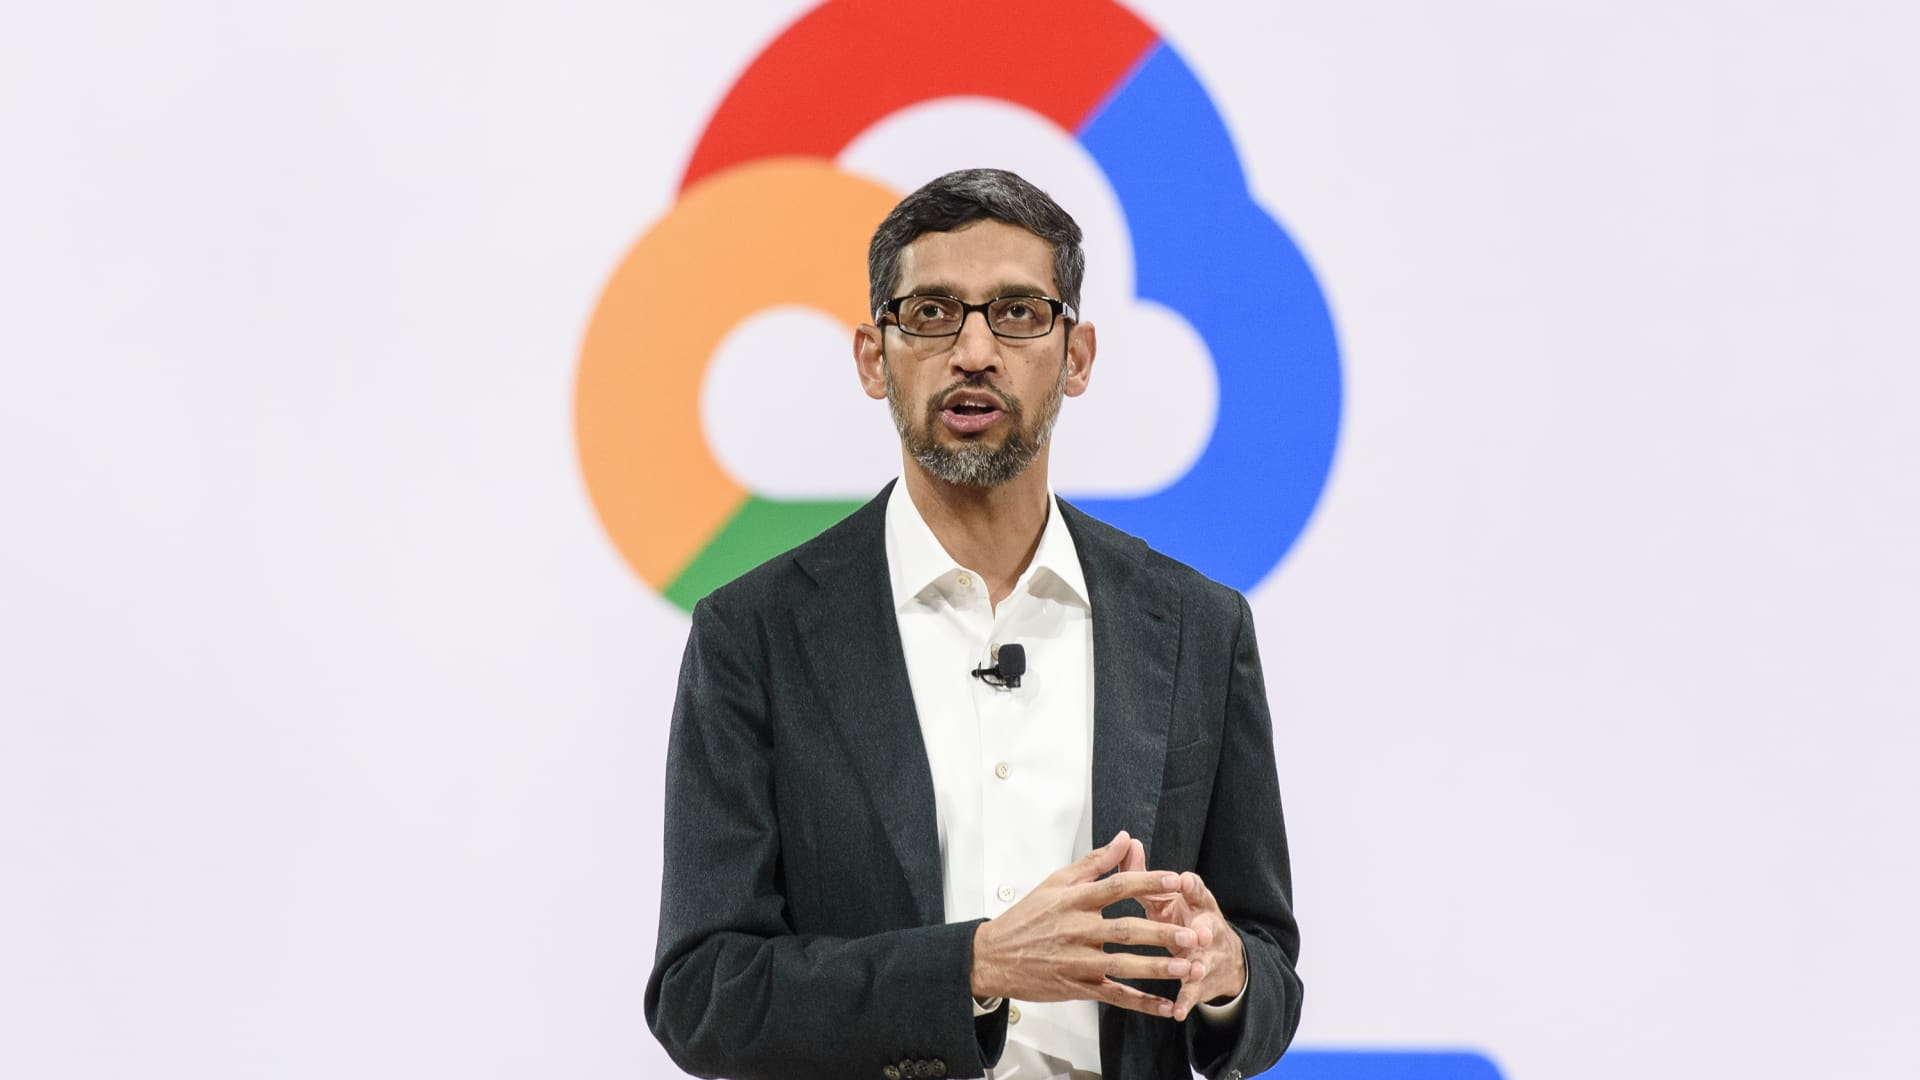 Sundar Pichai, chief executive officer at Google LLC, speaks during the Google Cloud Next '19 event in San Francisco, California, U.S., on Tuesday, April 9, 2019.